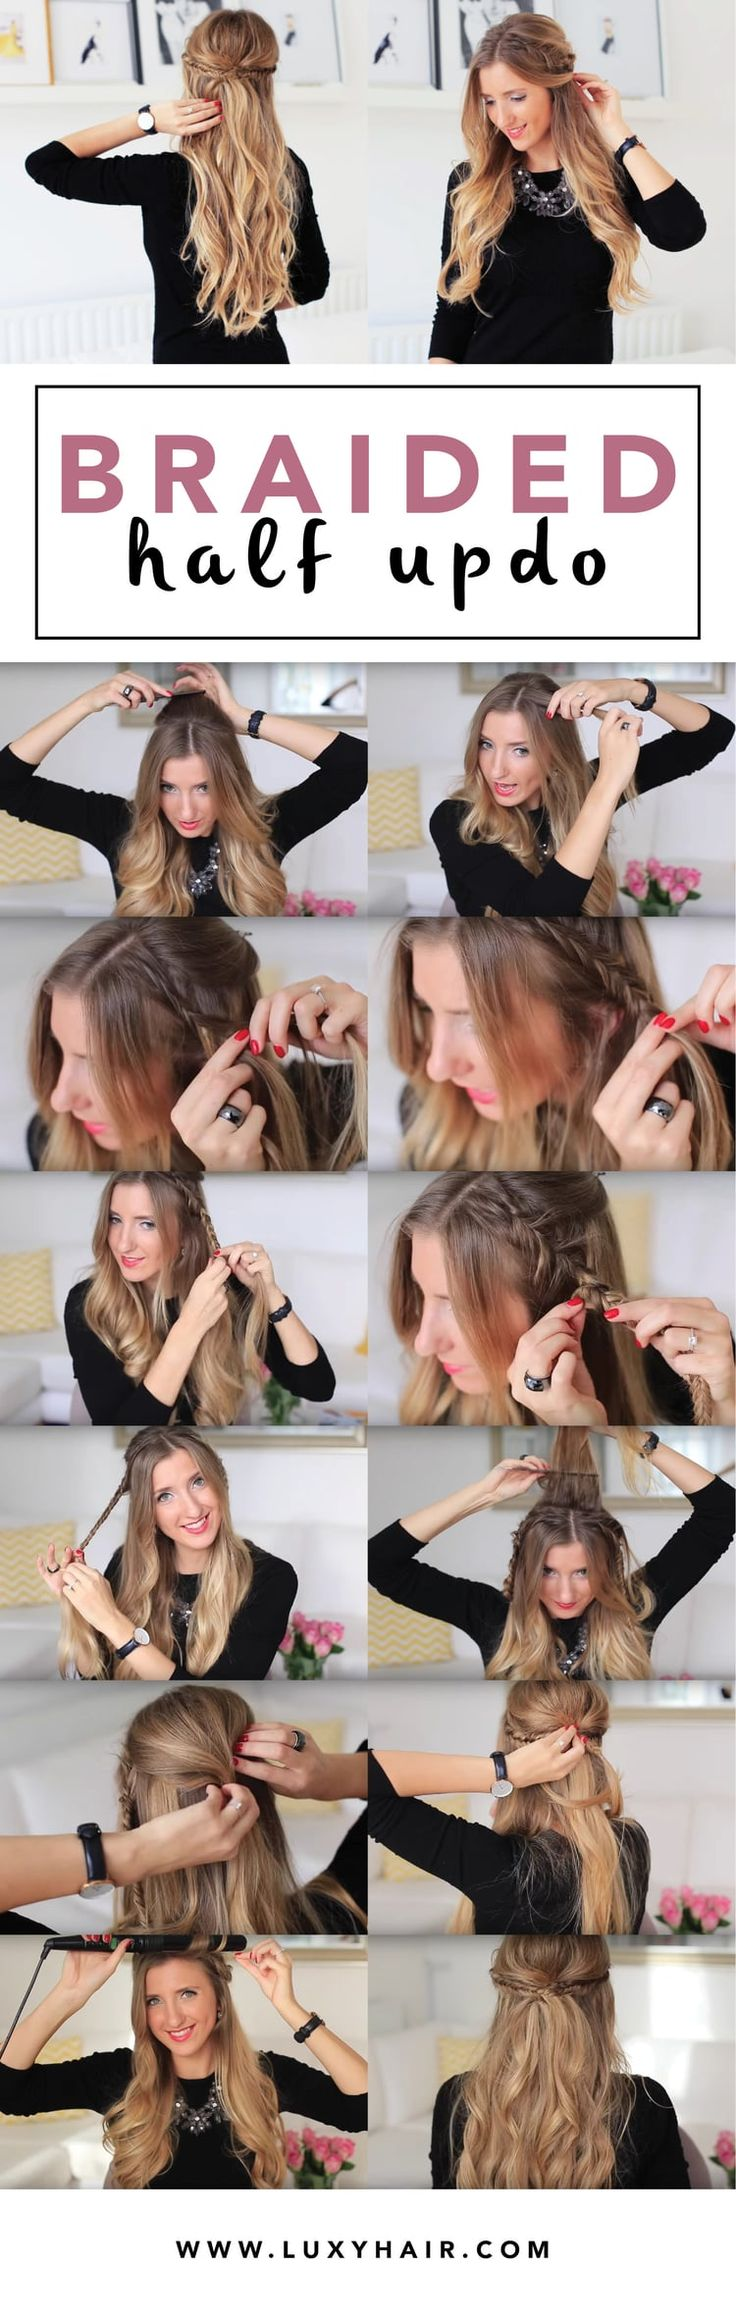 Holiday Half Updo — Luxy Hair Blog - All about hair!